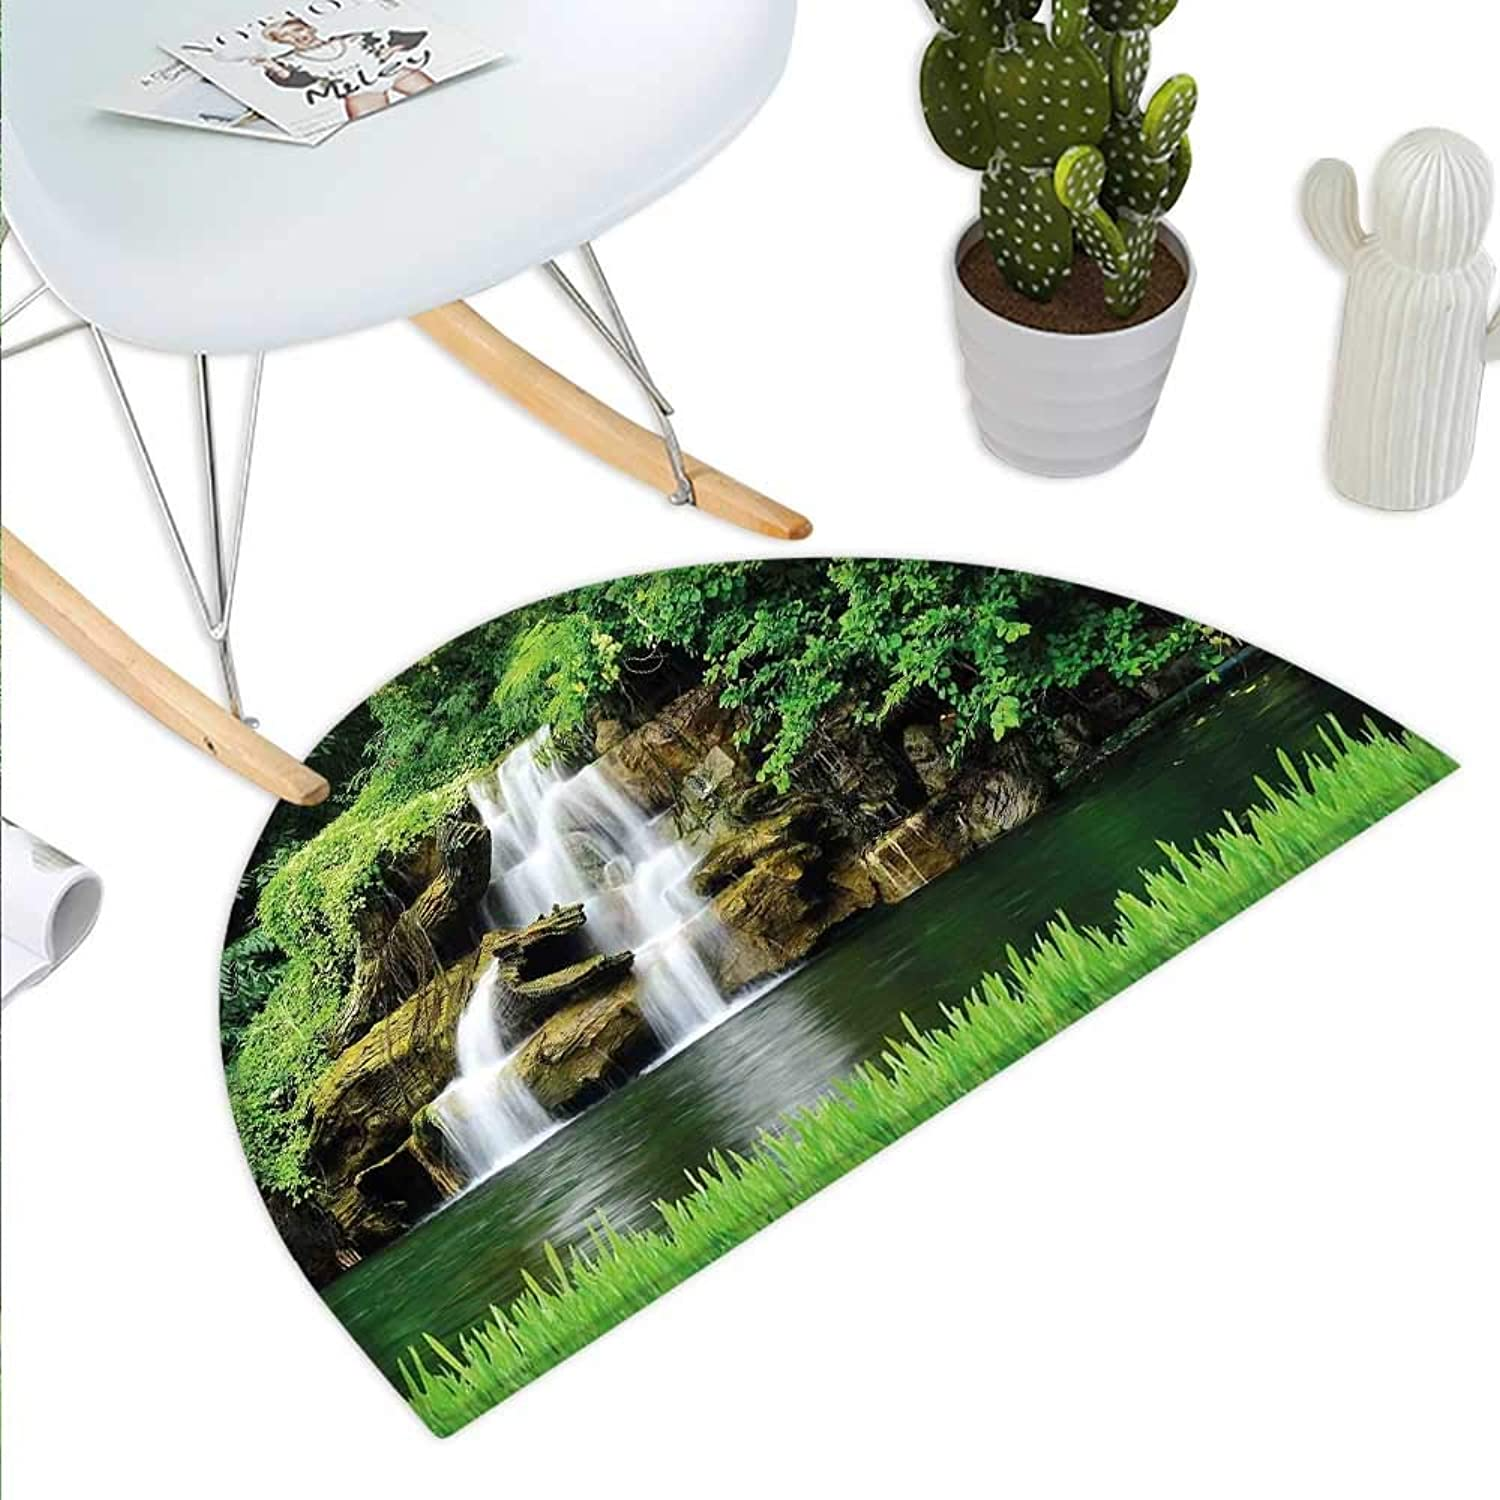 Waterfall Semicircle Doormat Double Waterfalls Flow to Natural Green Lake with Bushes and Grass Like Garden Print Halfmoon doormats H 35.4  xD 53.1  Green